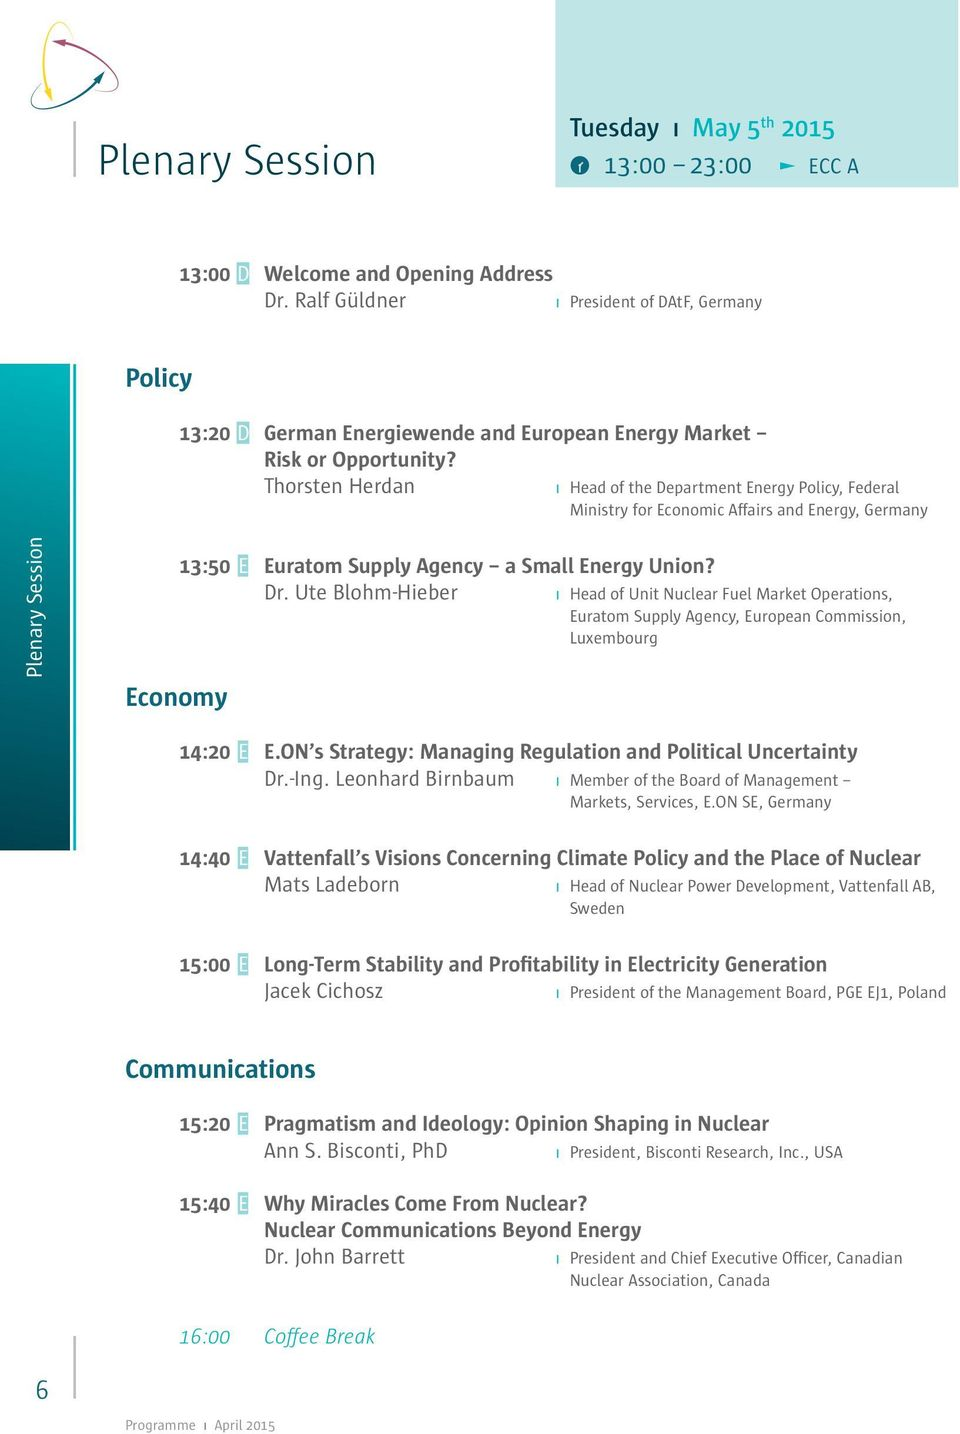 Thorsten Herdan ı Head of the Department Energy Policy, Federal Ministry for Economic Affairs and Energy, Plenary Session 13:50 E Euratom Suly Agency a Small Energy Union? Dr.